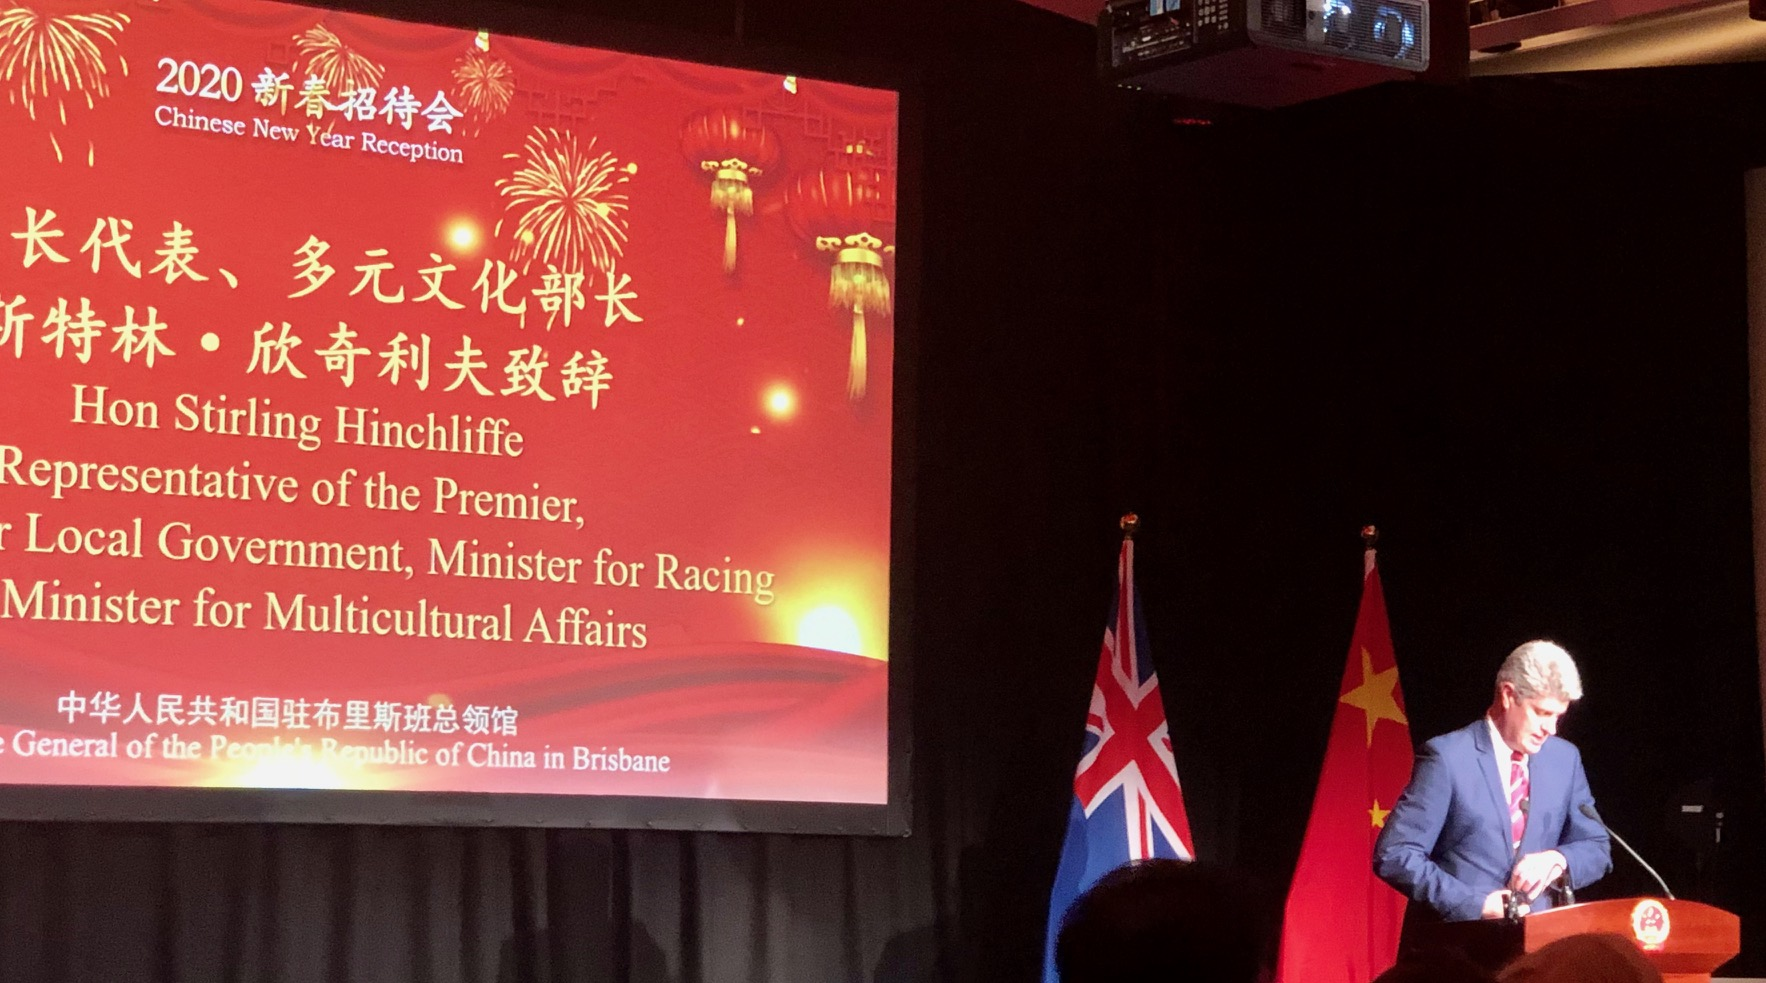 Chinese New Year Event 2020 Stirling Hinchliffe